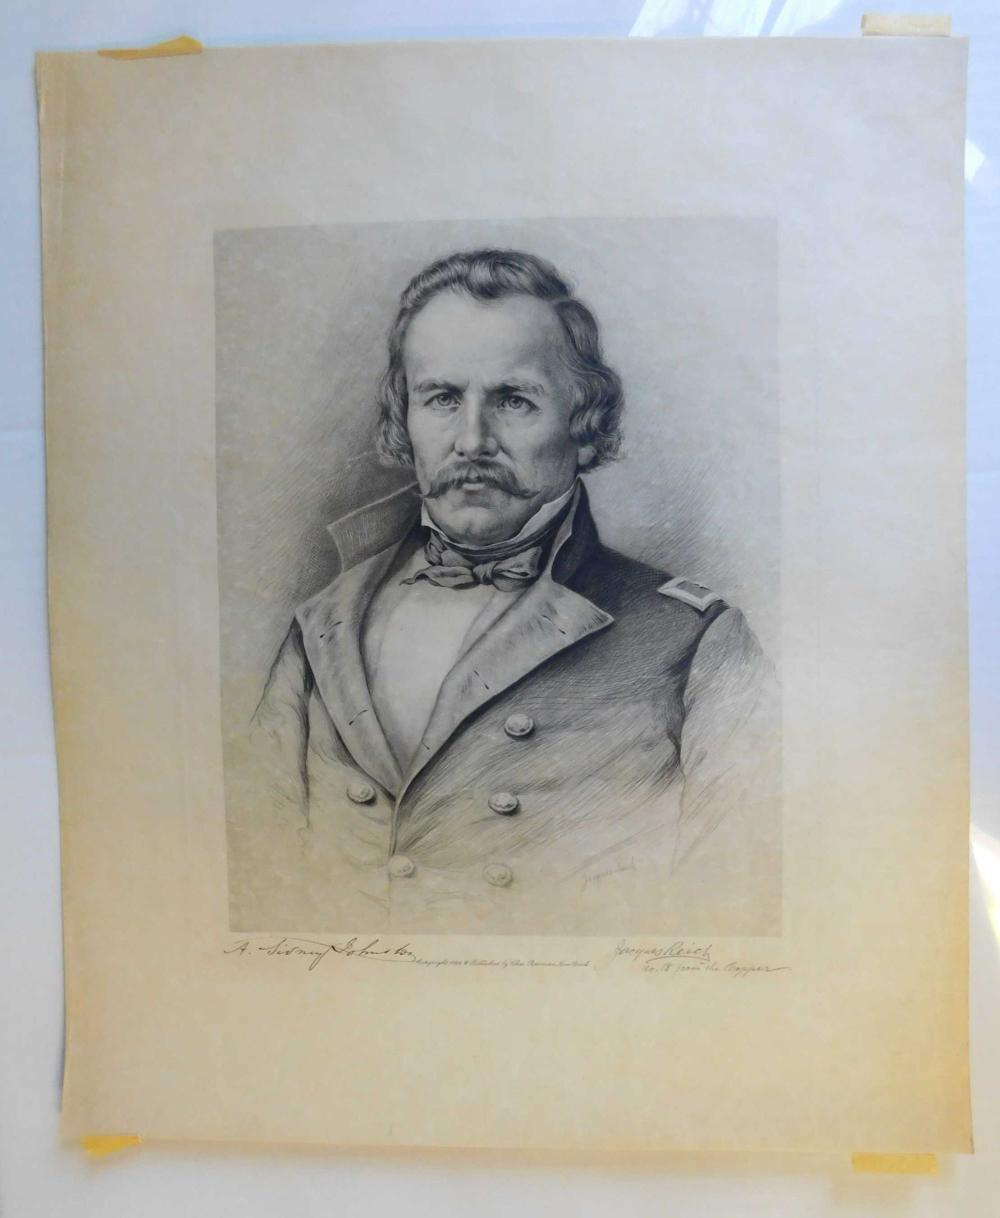 Jacques Reich. Signed etching. (1896).